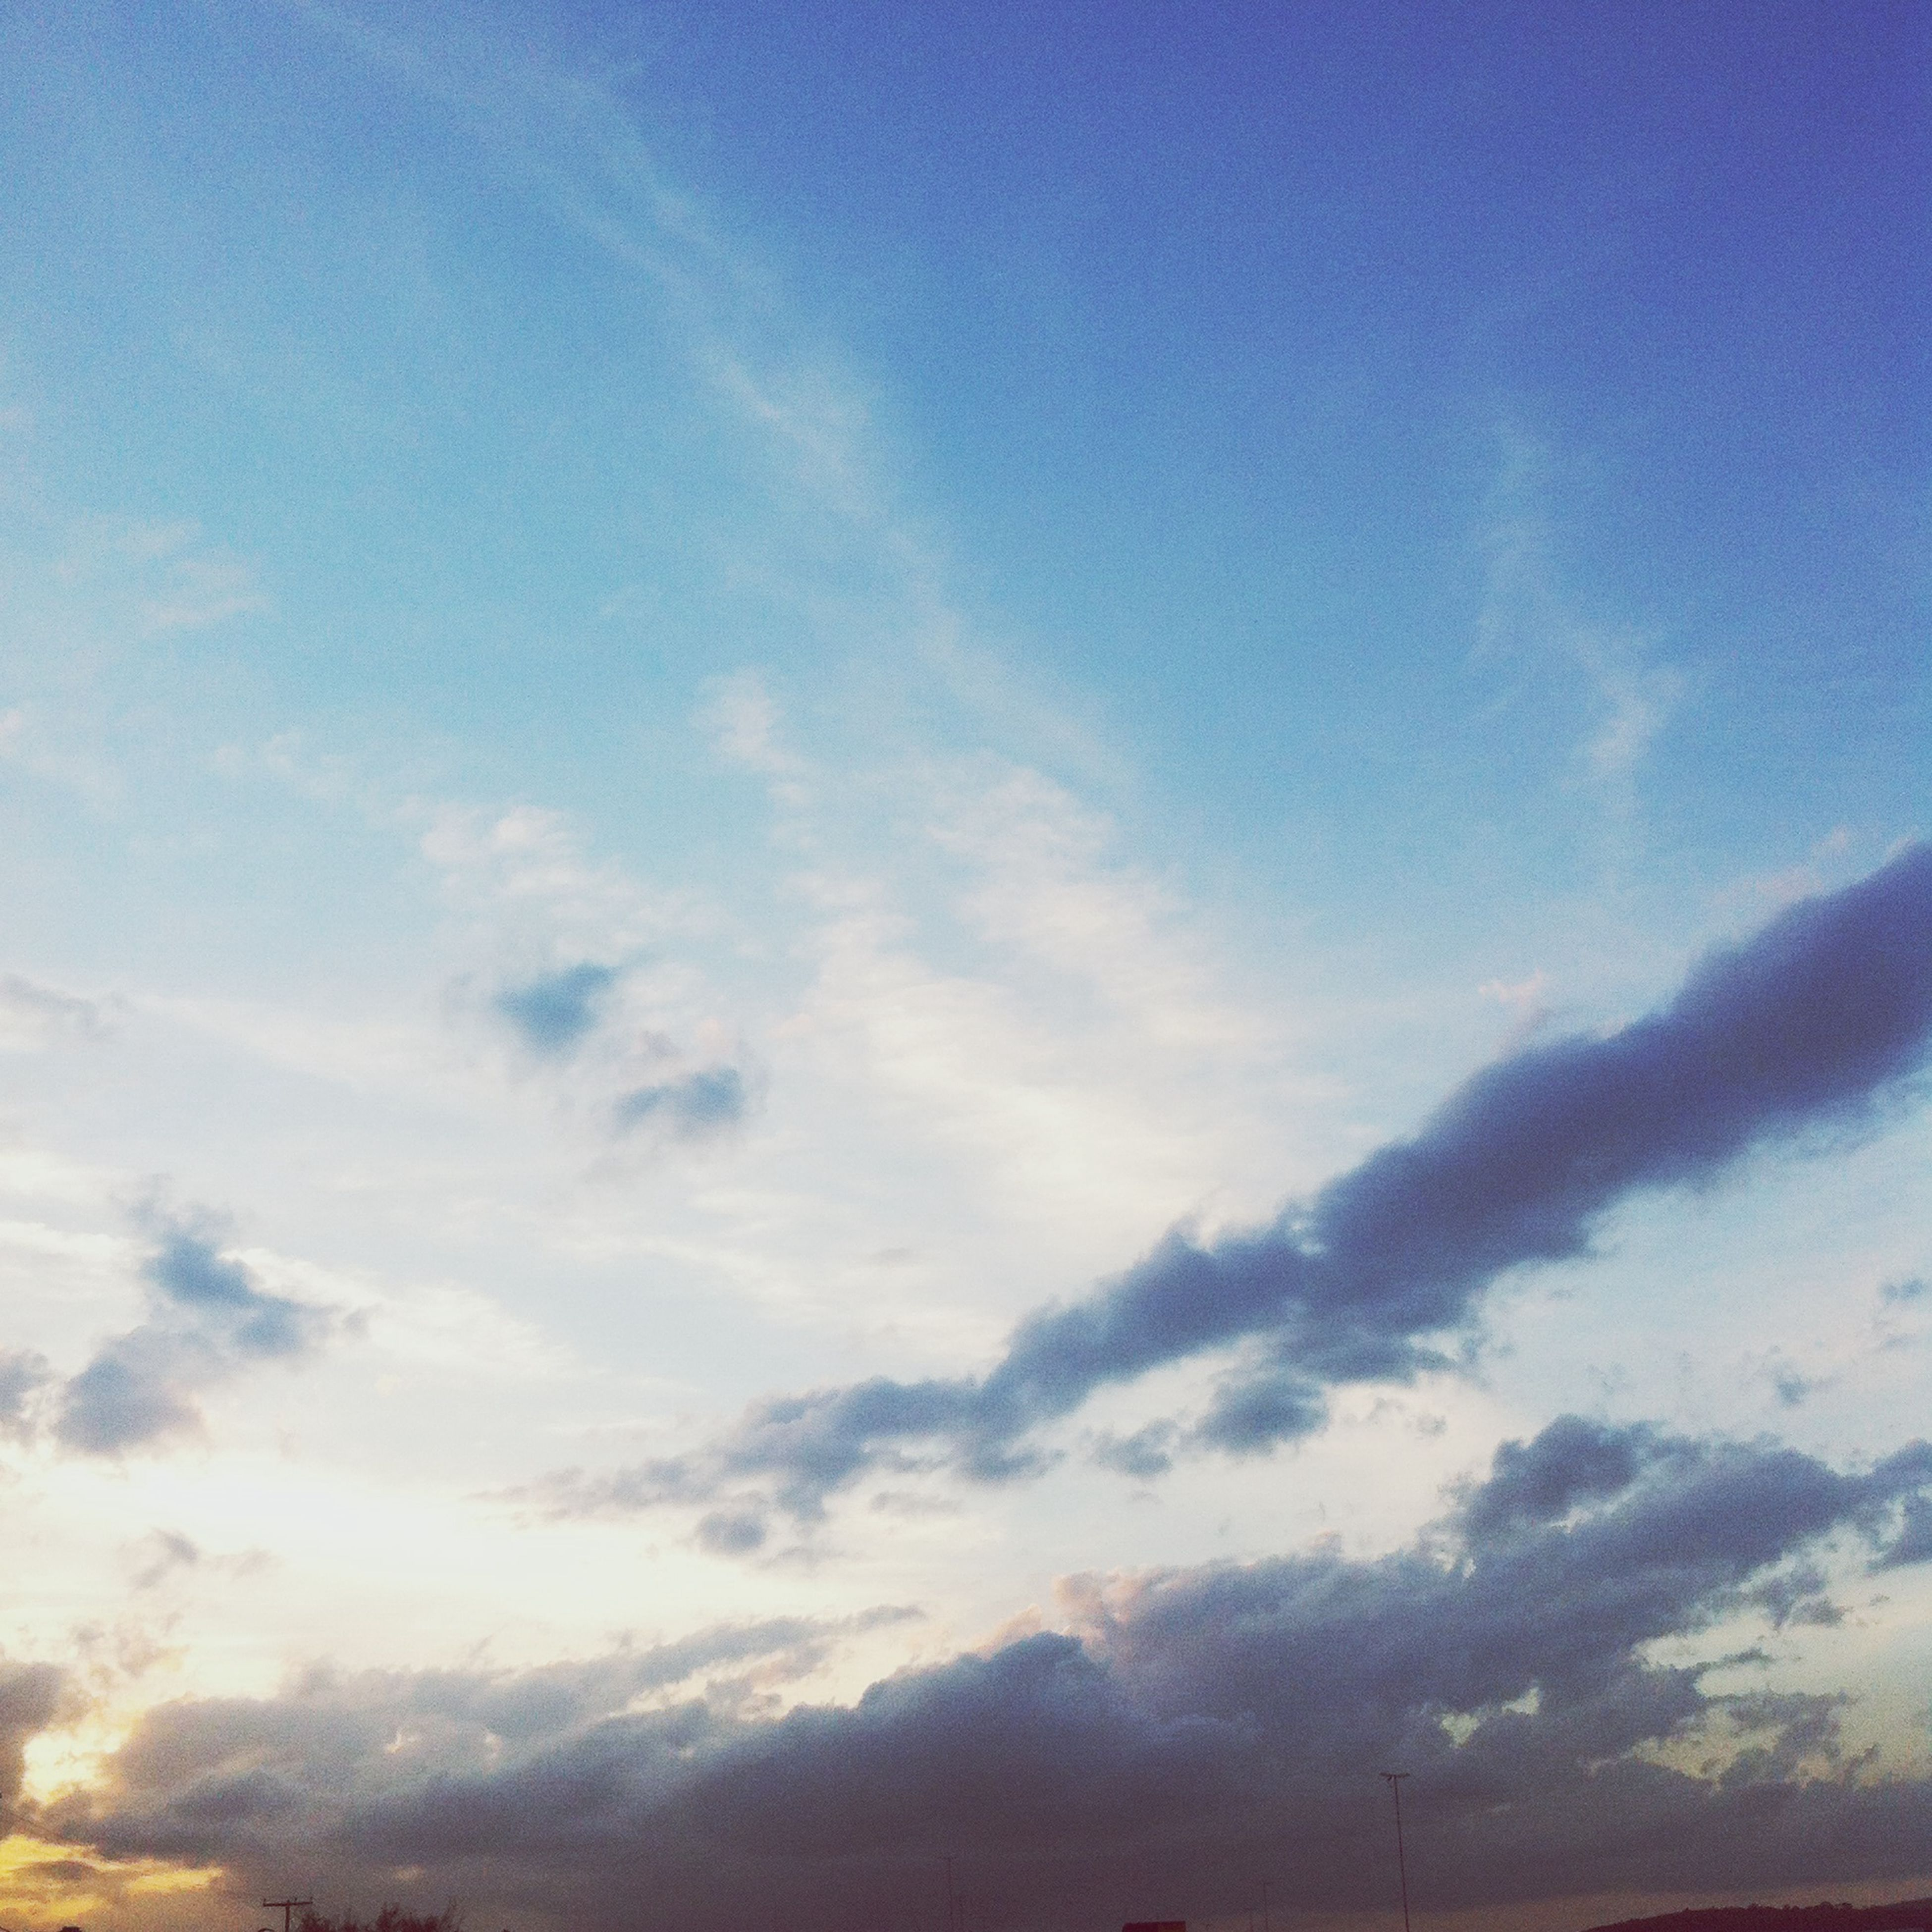 low angle view, sky, blue, cloud - sky, backgrounds, beauty in nature, tranquility, full frame, nature, scenics, sky only, tranquil scene, cloud, cloudy, outdoors, idyllic, no people, day, cloudscape, sunlight